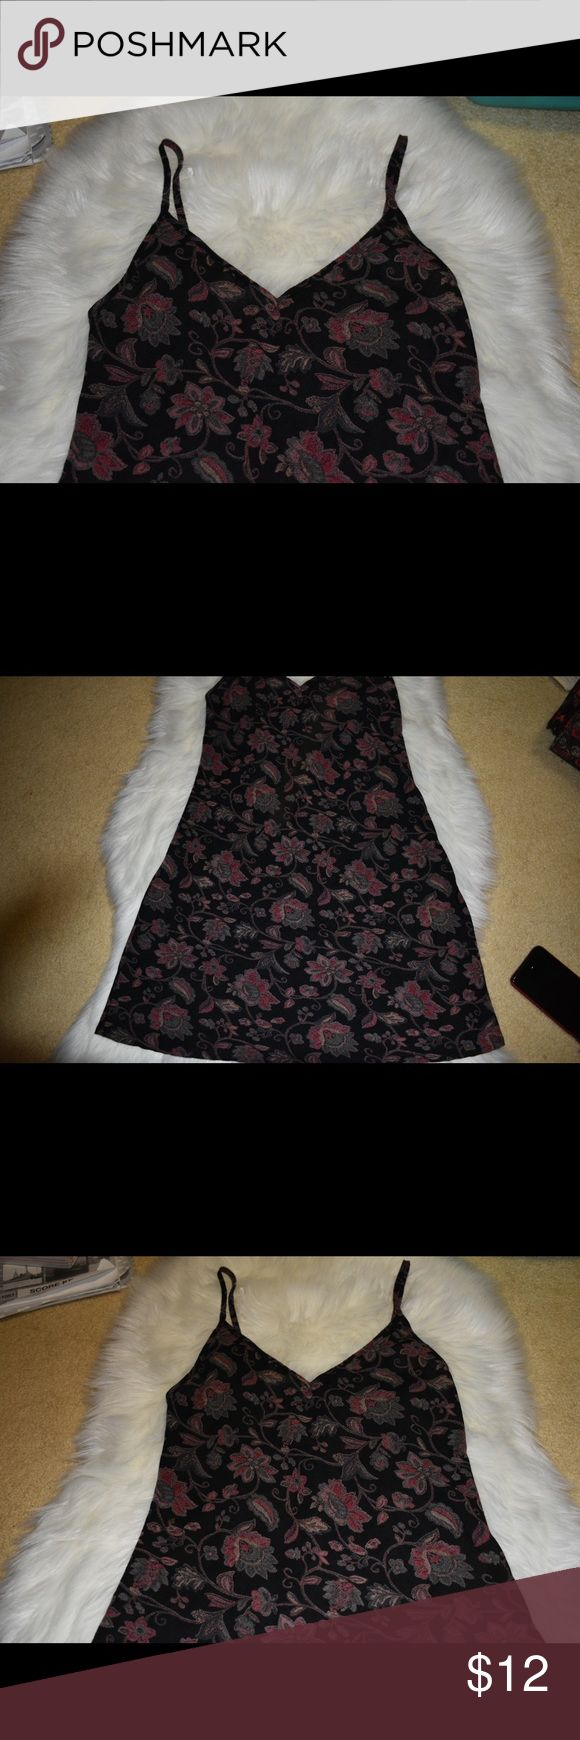 Brandy Melville Floral Thick Dress Brand new without tags! Brandy Melville J galt. No brandy tag but this is 100% authentic, purchased from a brandy Melville location. Brandy Melville Dresses